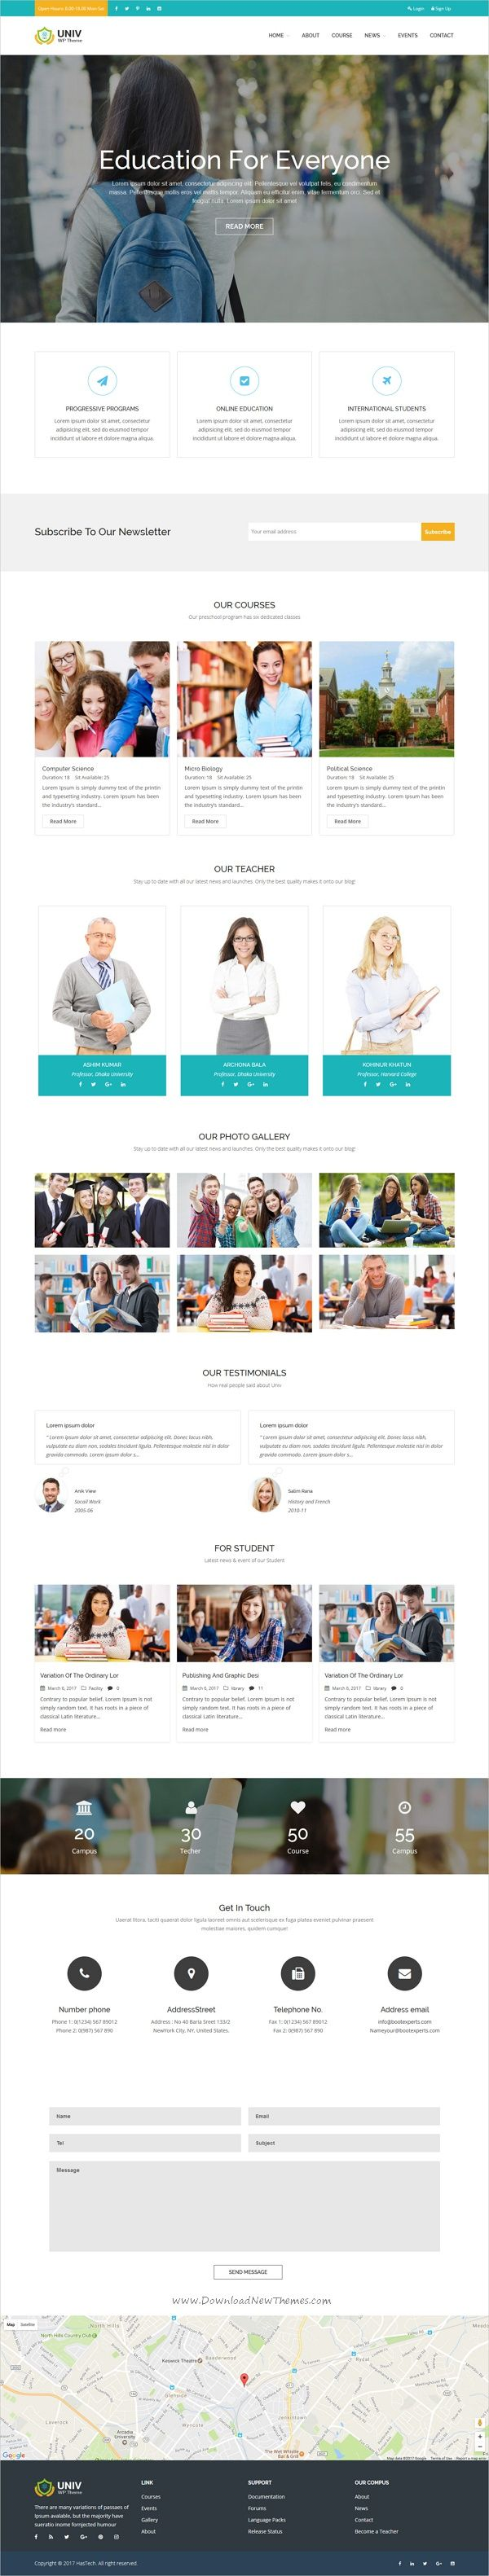 Univ is an awesome design responsive #WordPress theme for #edtech academy, campus, #school, e-learning portal or any #educational institutions website download now➩ https://themeforest.net/item/univ-education-wordpress-theme/19659022?ref=Datasata